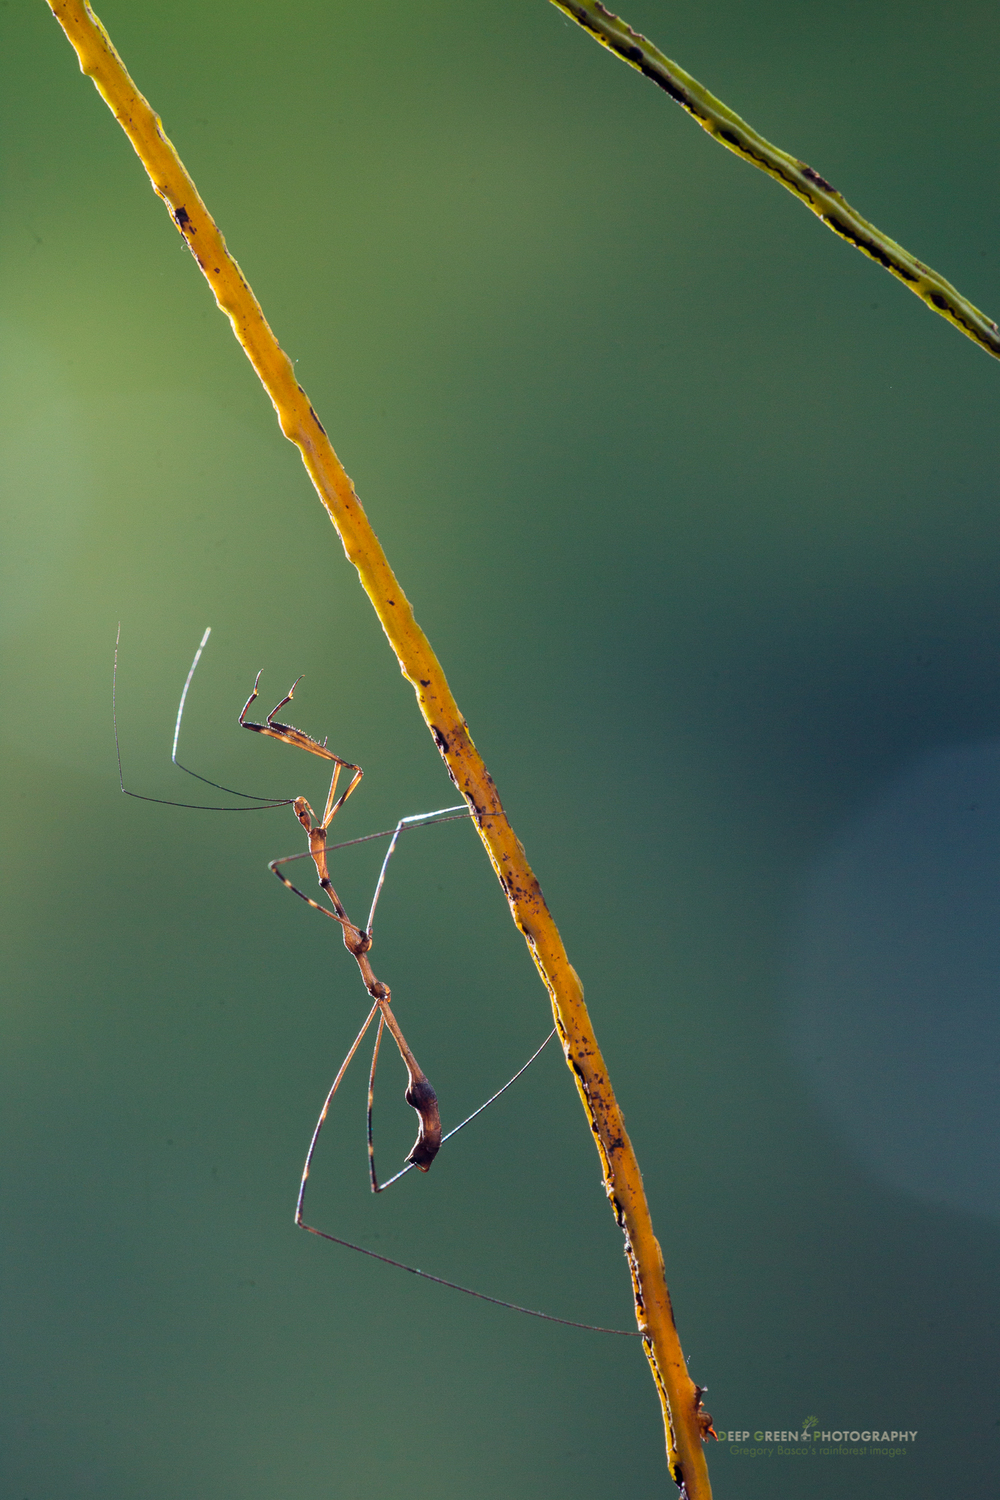 a Phasmid (walking stick) baby on a rainforest stem